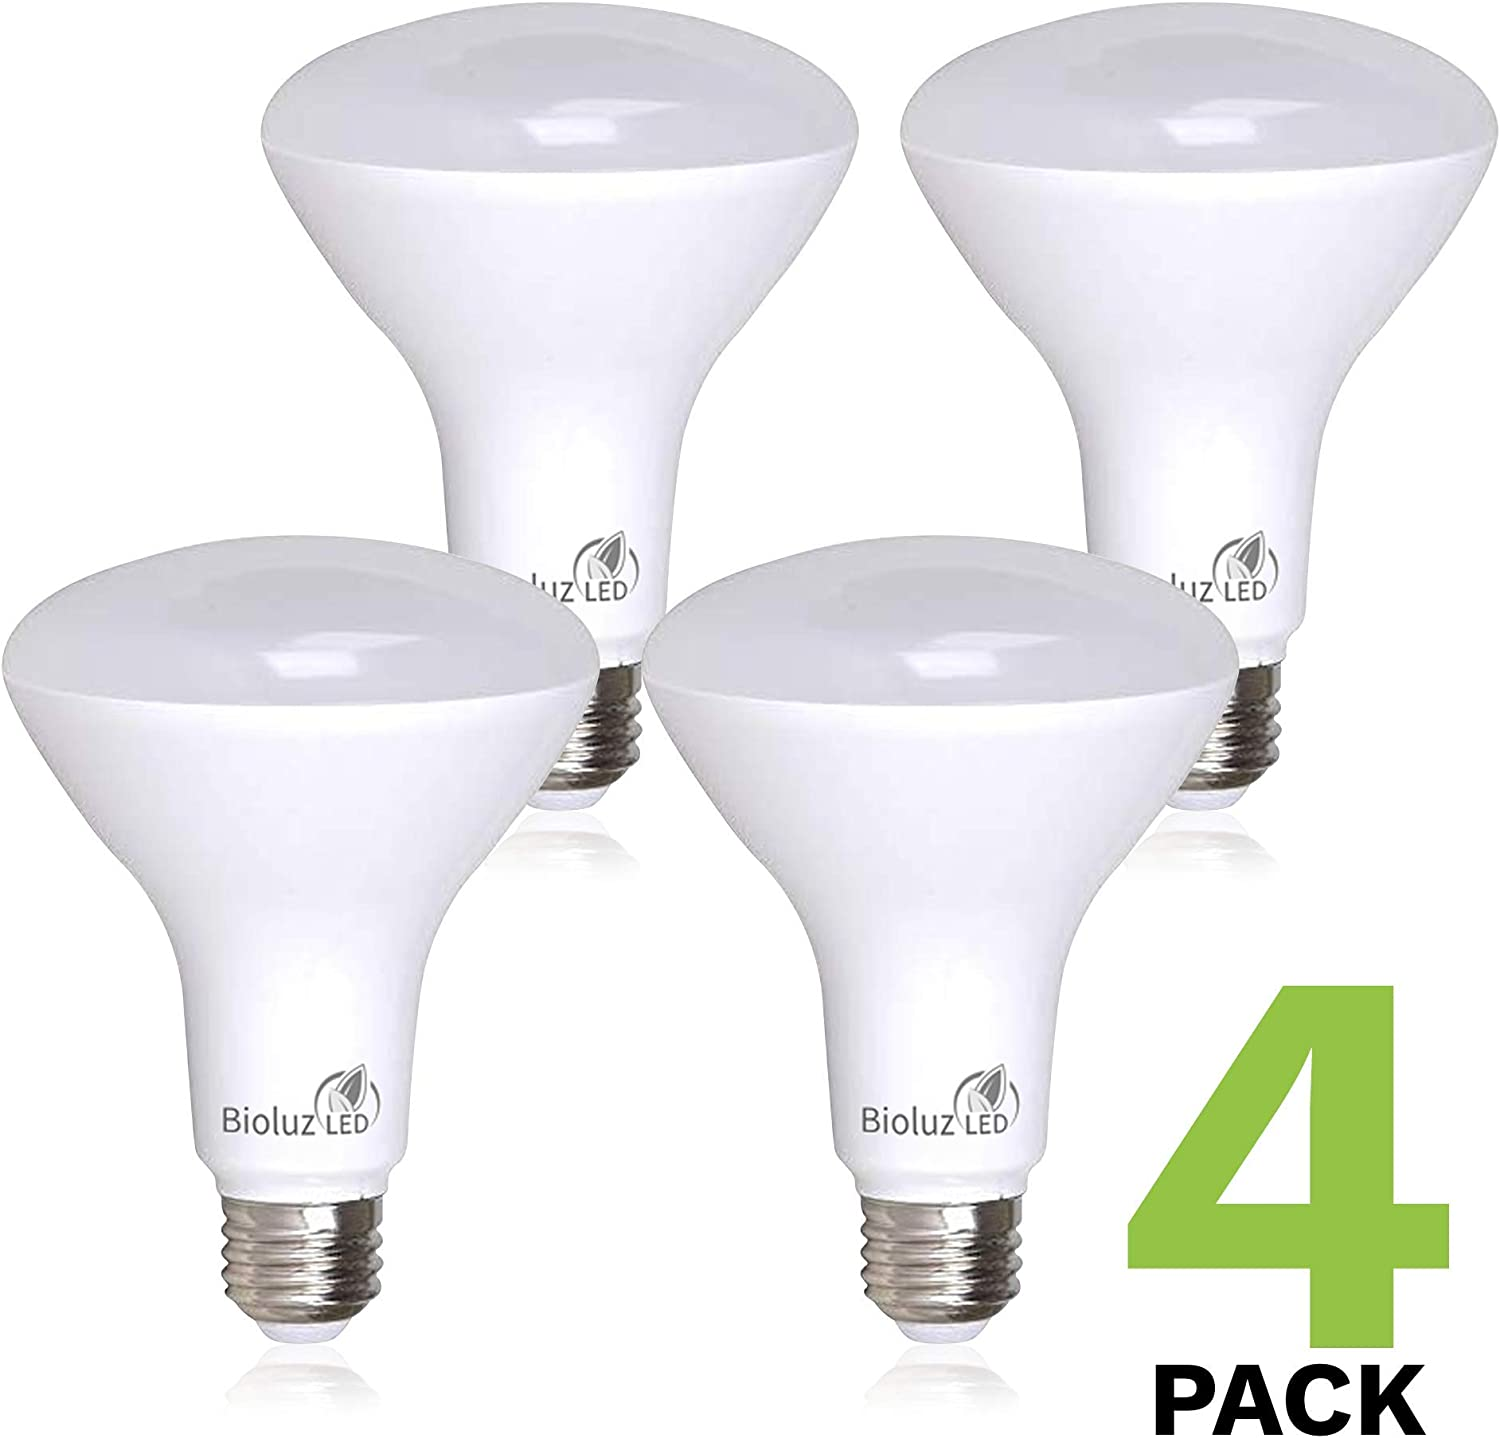 50w Replacement 2700k Flood Light Dimmable LOT 4 Bioluz LED Br20 Smooth 7w